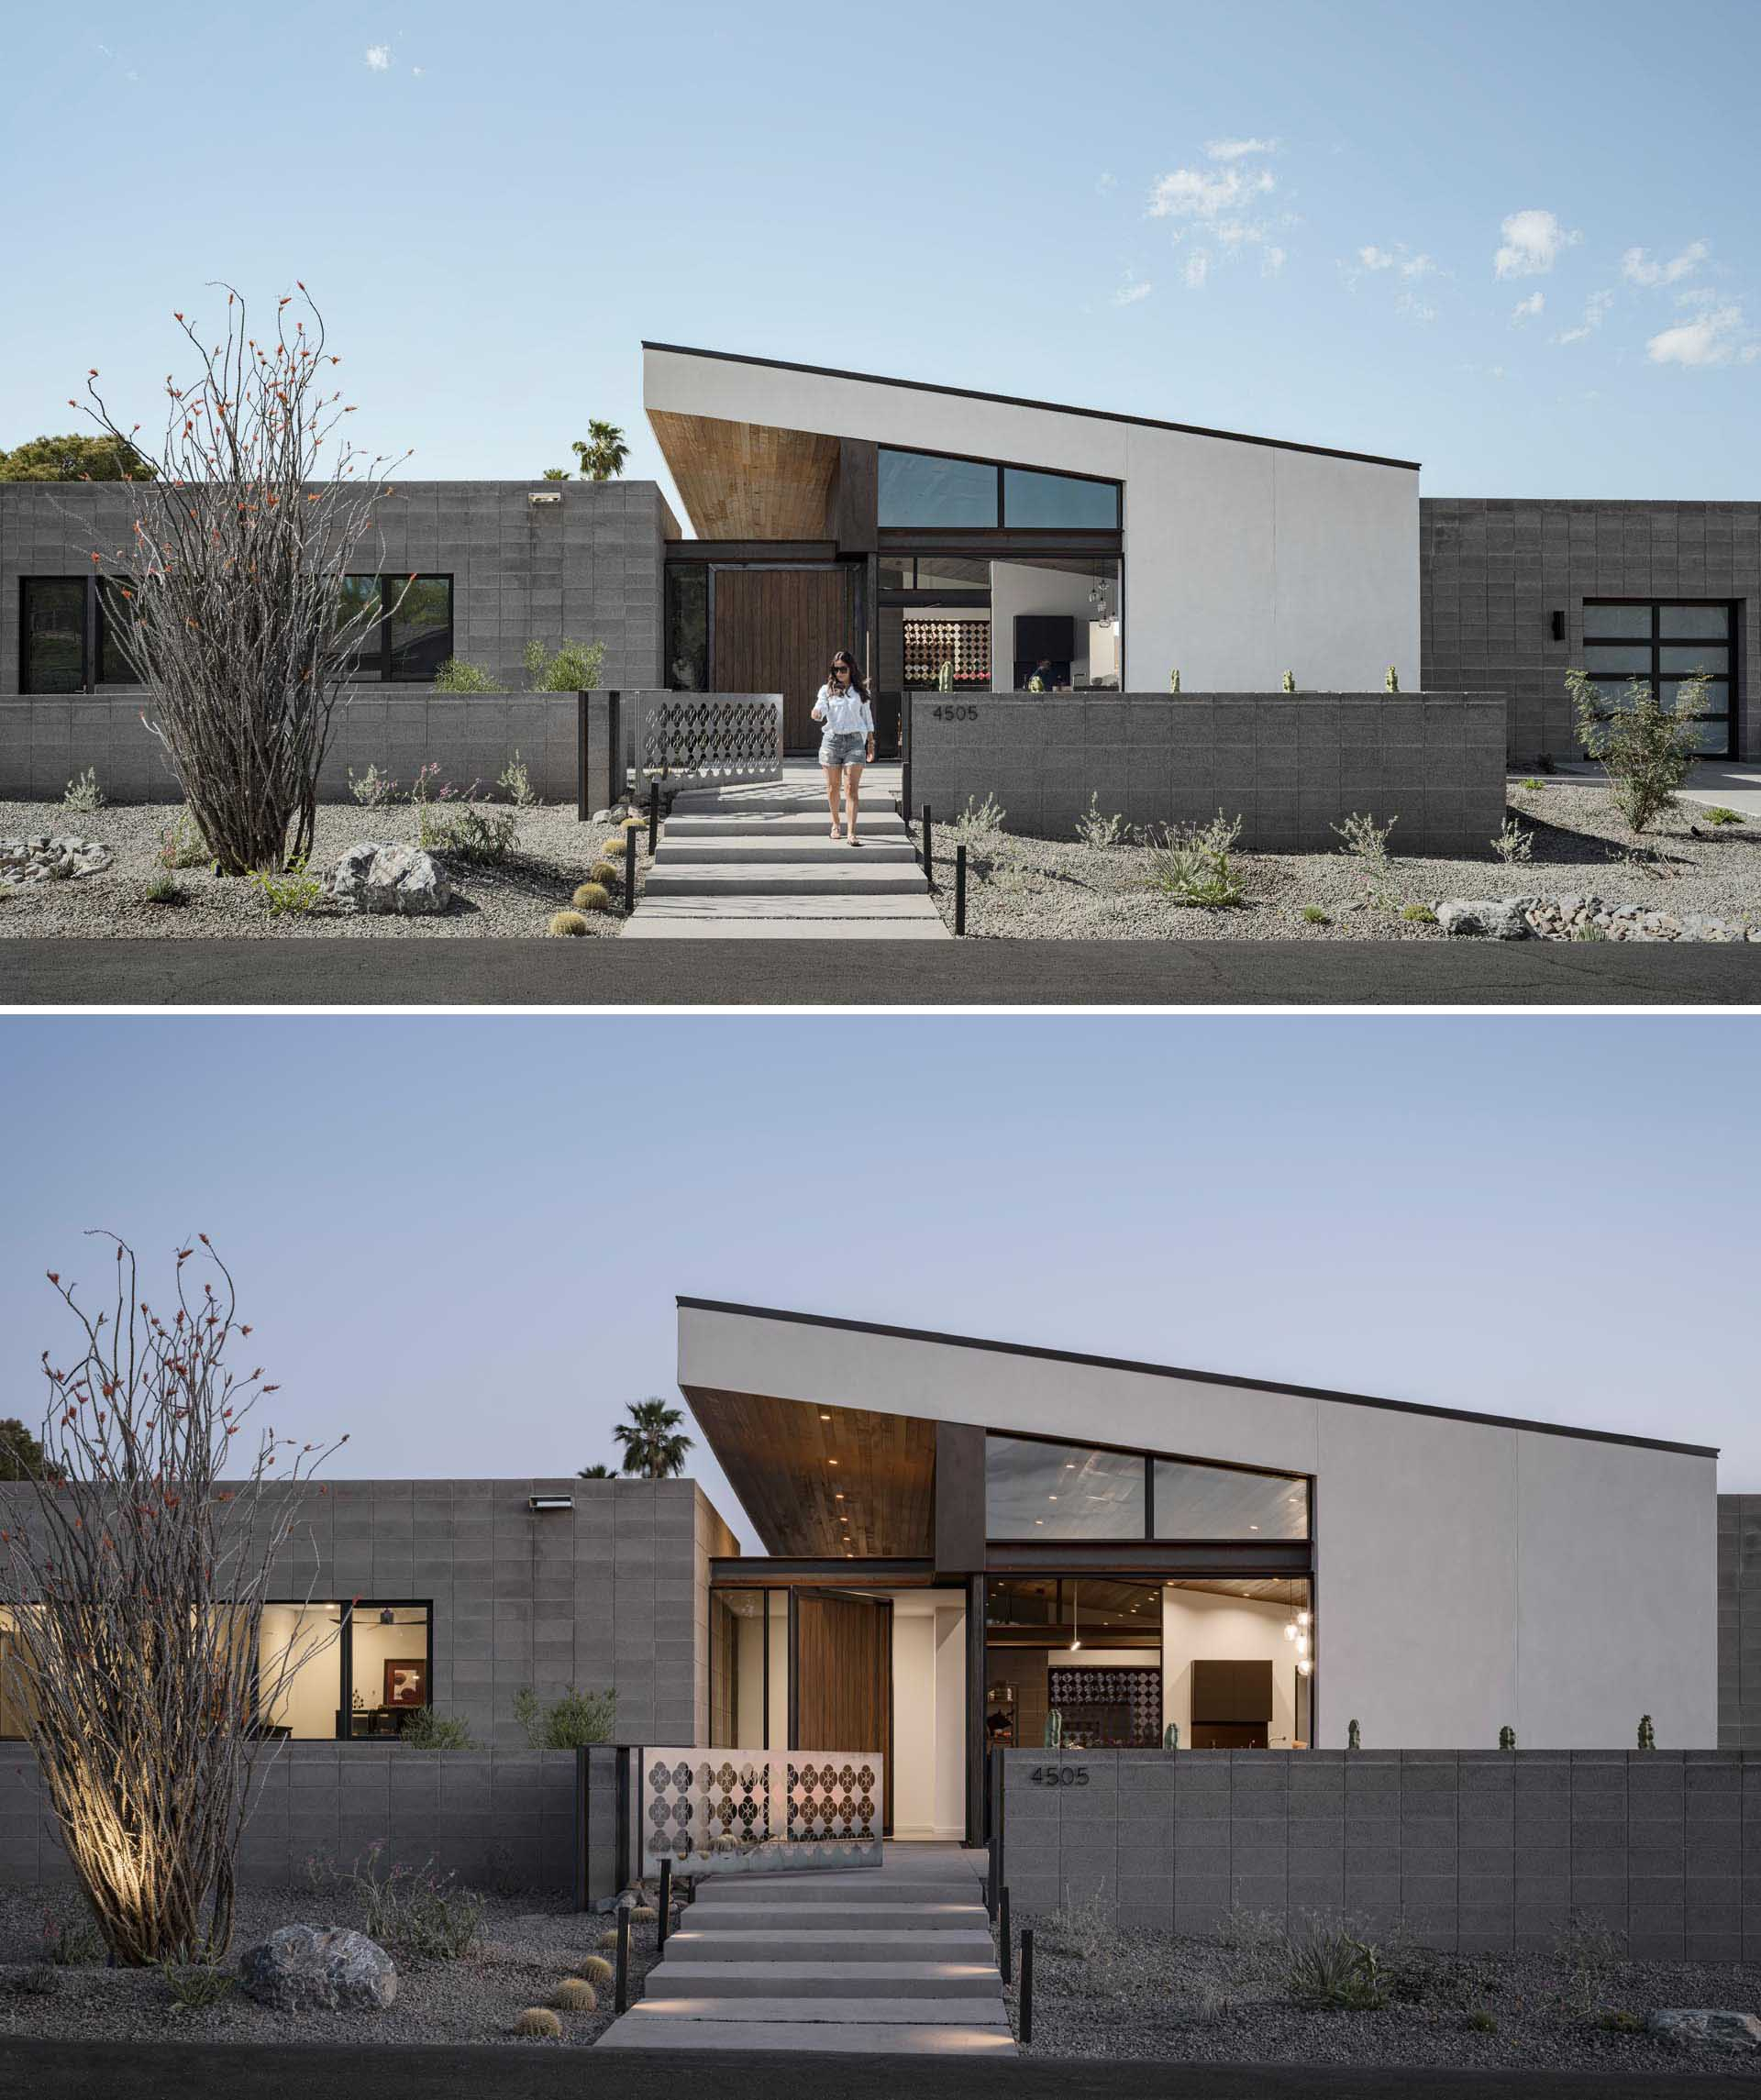 Concrete blocks are used for the walls of this modern house, as well as the low fence that surrounds a front porch.